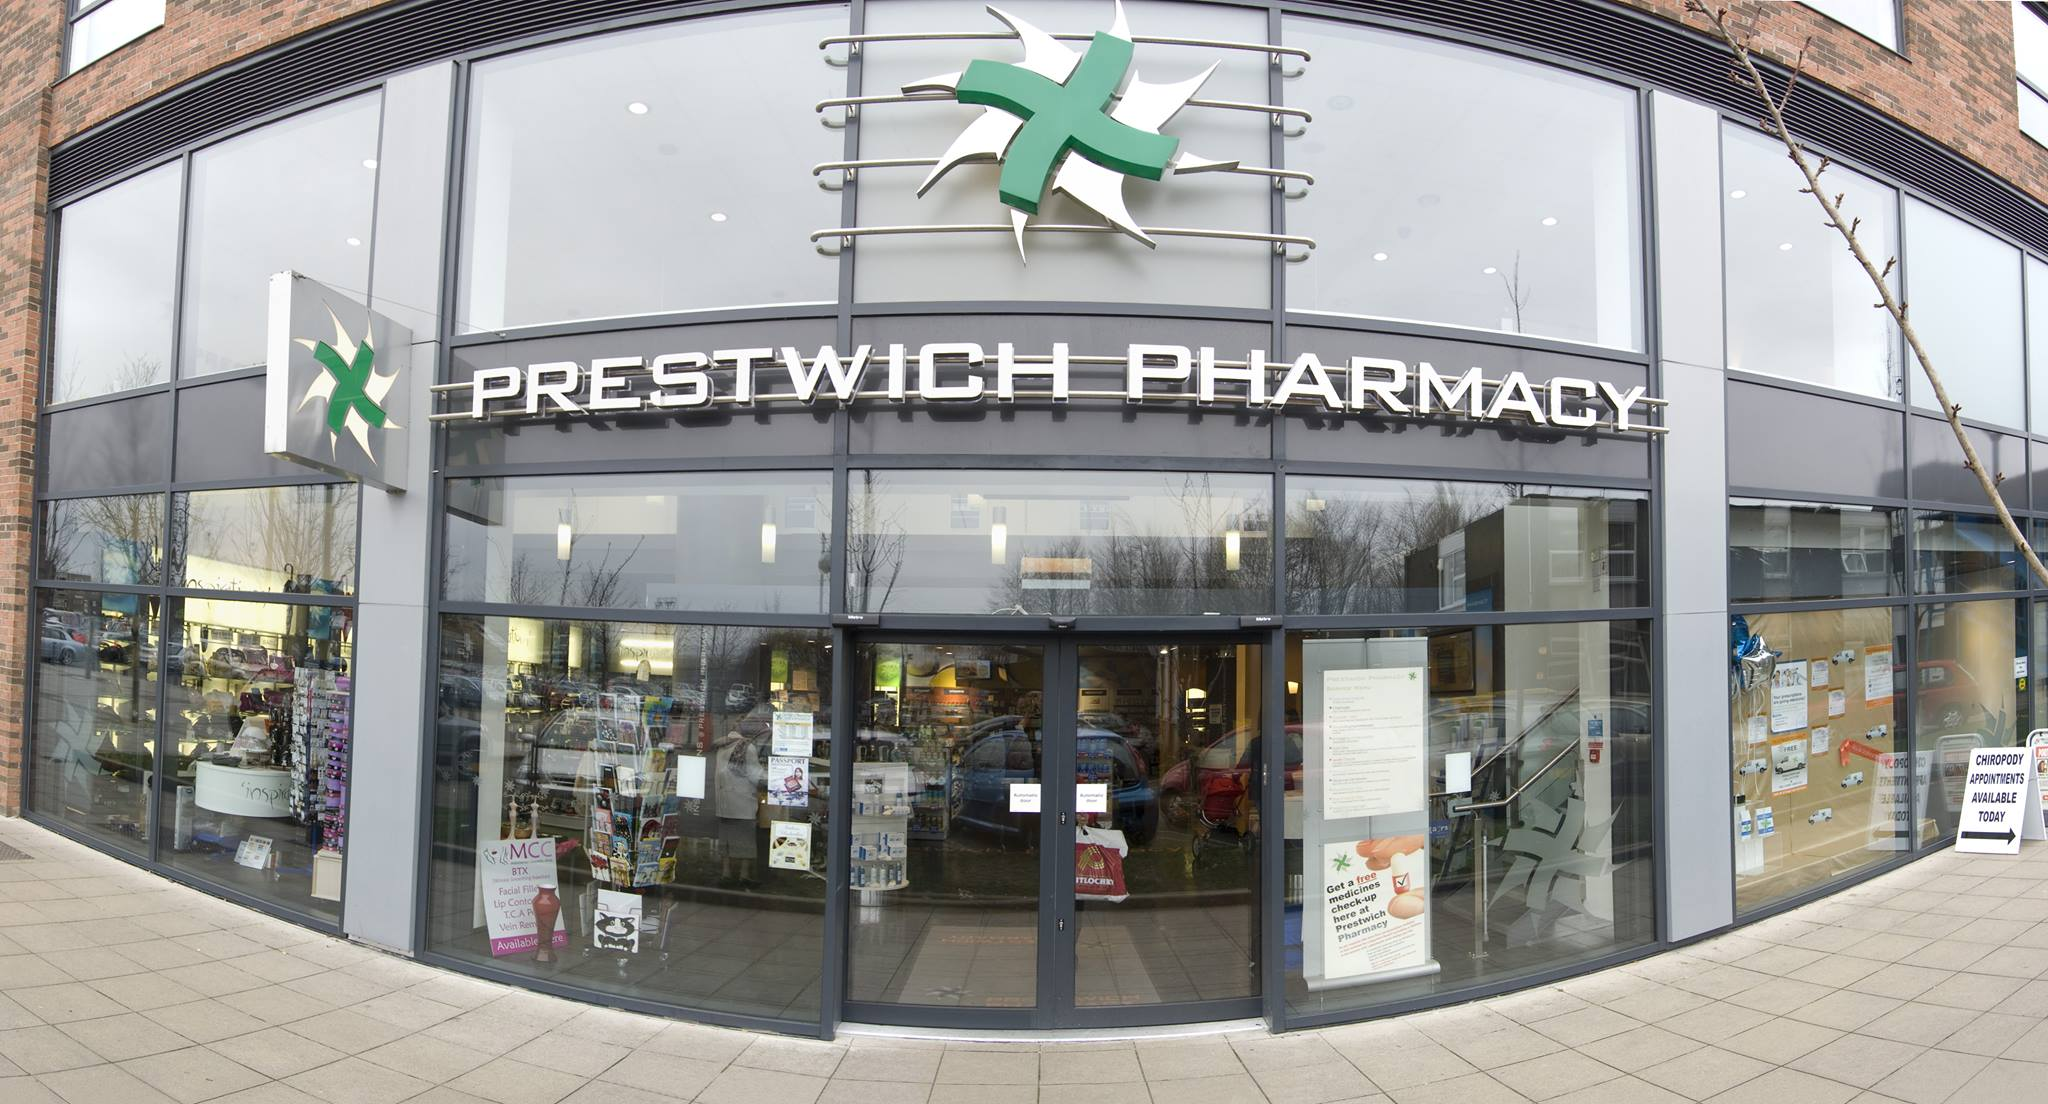 Gold Standard Foot Care Clinic in Partnership with Prestwich Pharmacy